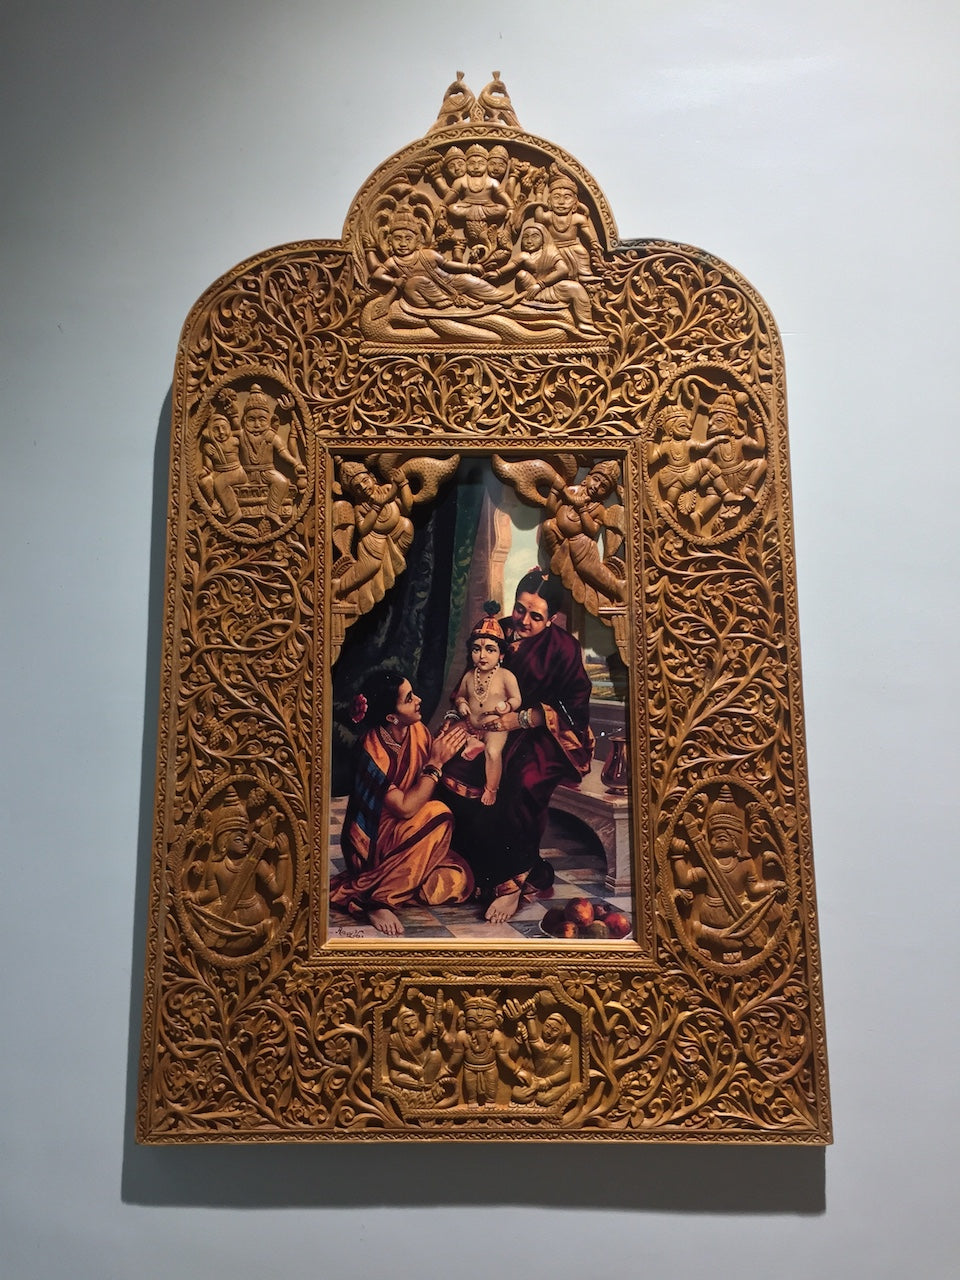 Sandalwood Rare Hand Carved Frame wall hanging artwork - Arts99 - Online Art Gallery